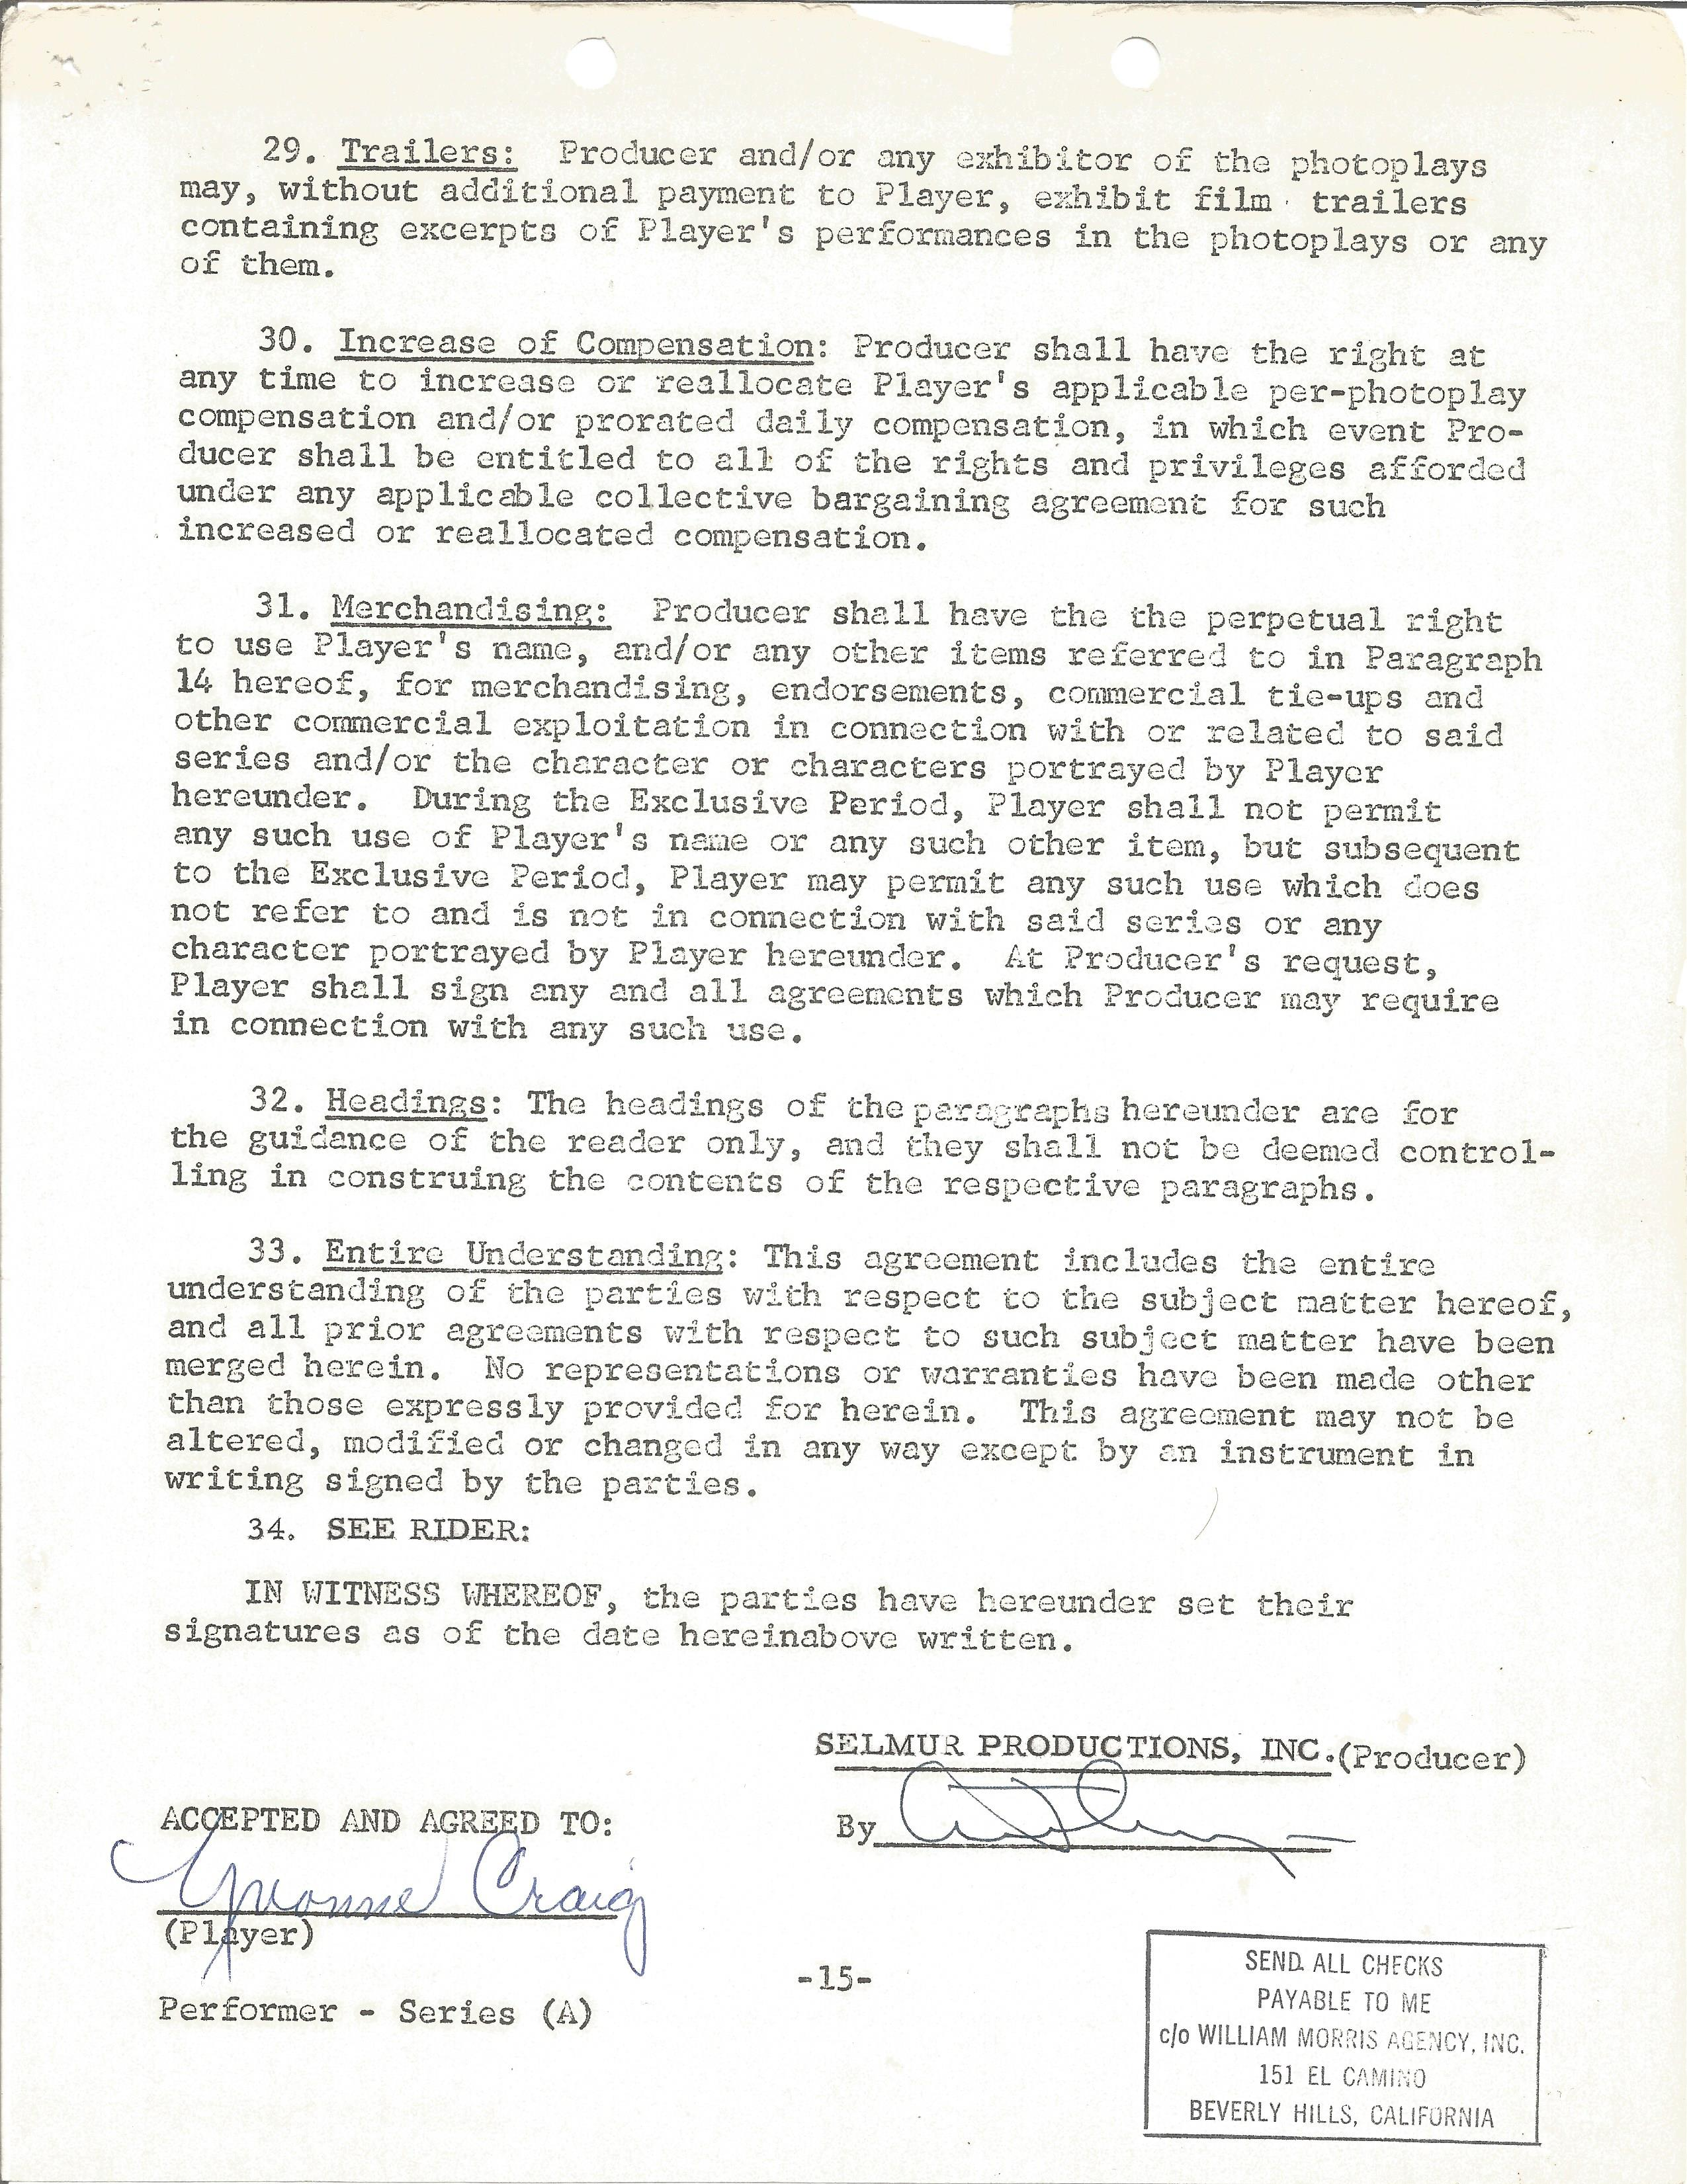 A Yvonne Craig employment contract from the film HOORAY FOR LOVE as the character ABBY YOUNG on - Image 2 of 2